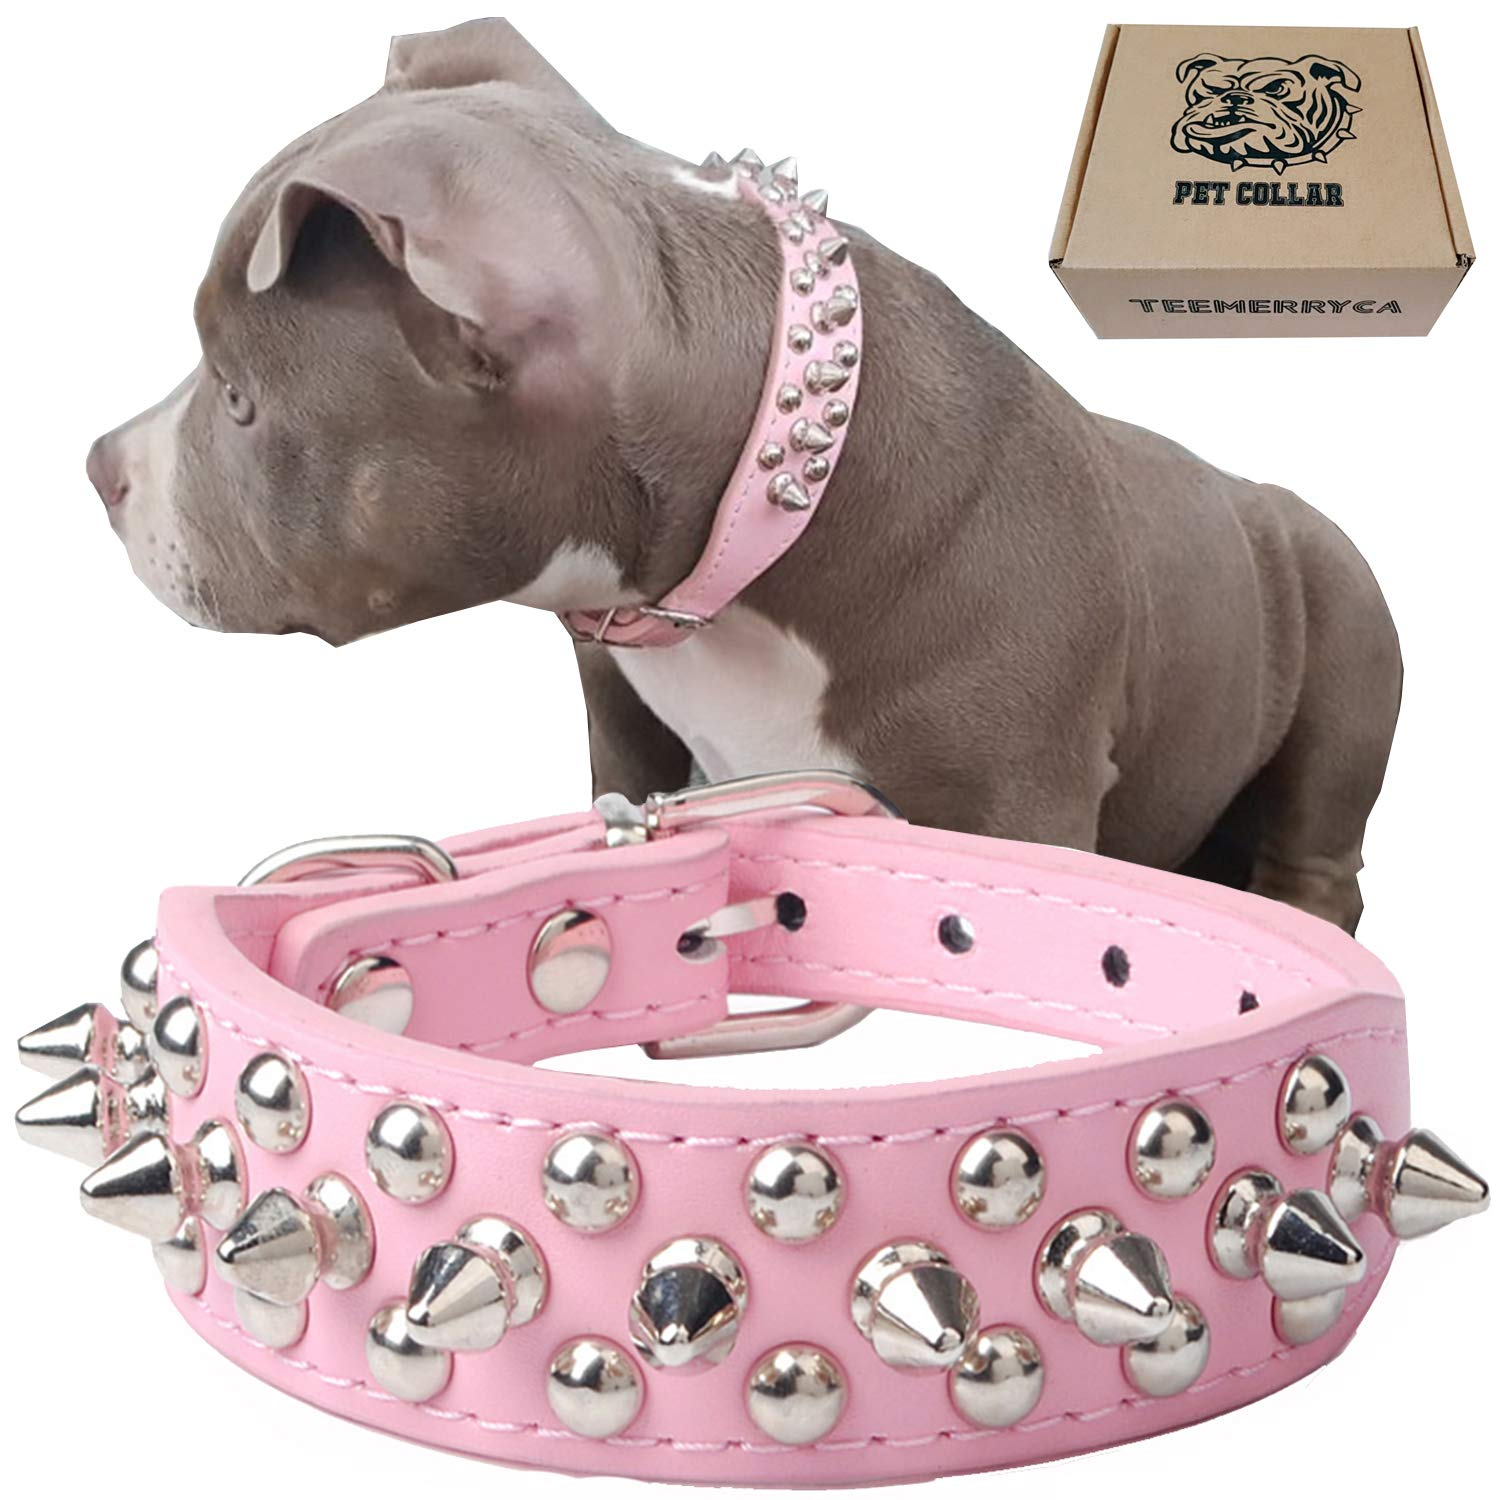 teemerryca Adjustable Leather Spiked Studded Dog Collars with a Squeak Ball Gift for Small Medium Large Pets Like Cats…